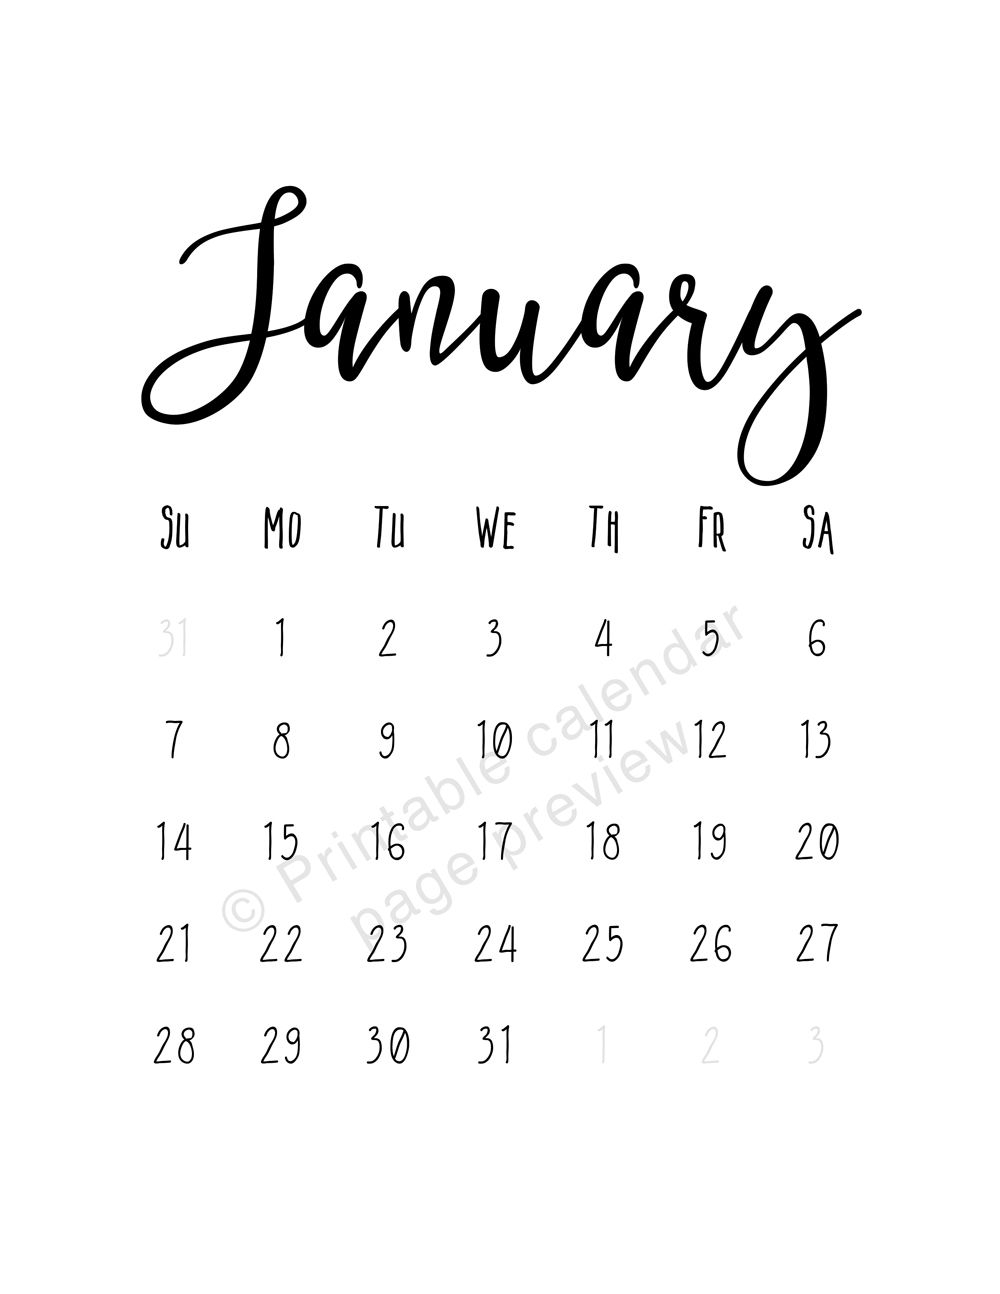 calendar printable monthly calendar 2018 desk::January 2019 iPhone Calendar